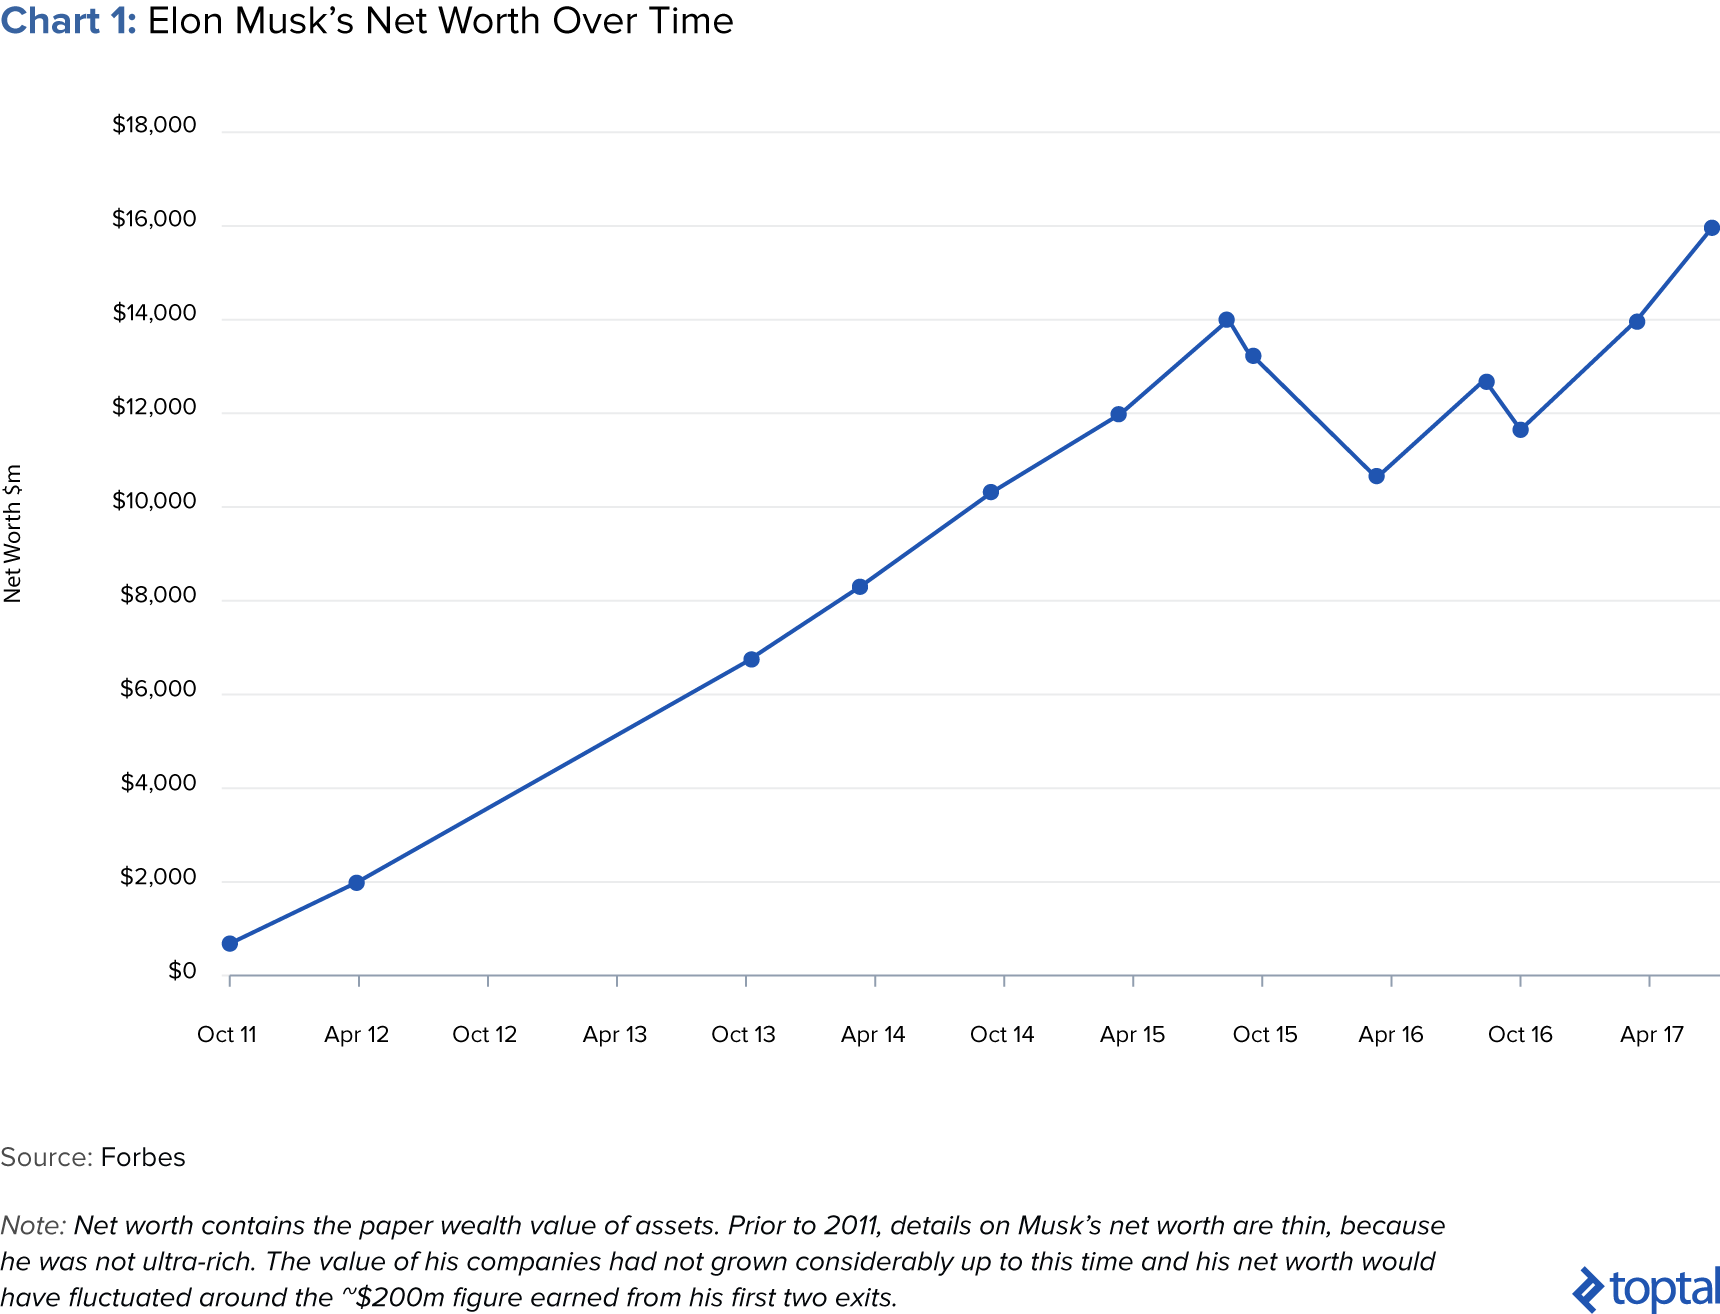 Chart 1: Elon Musk's Net Worth over Time